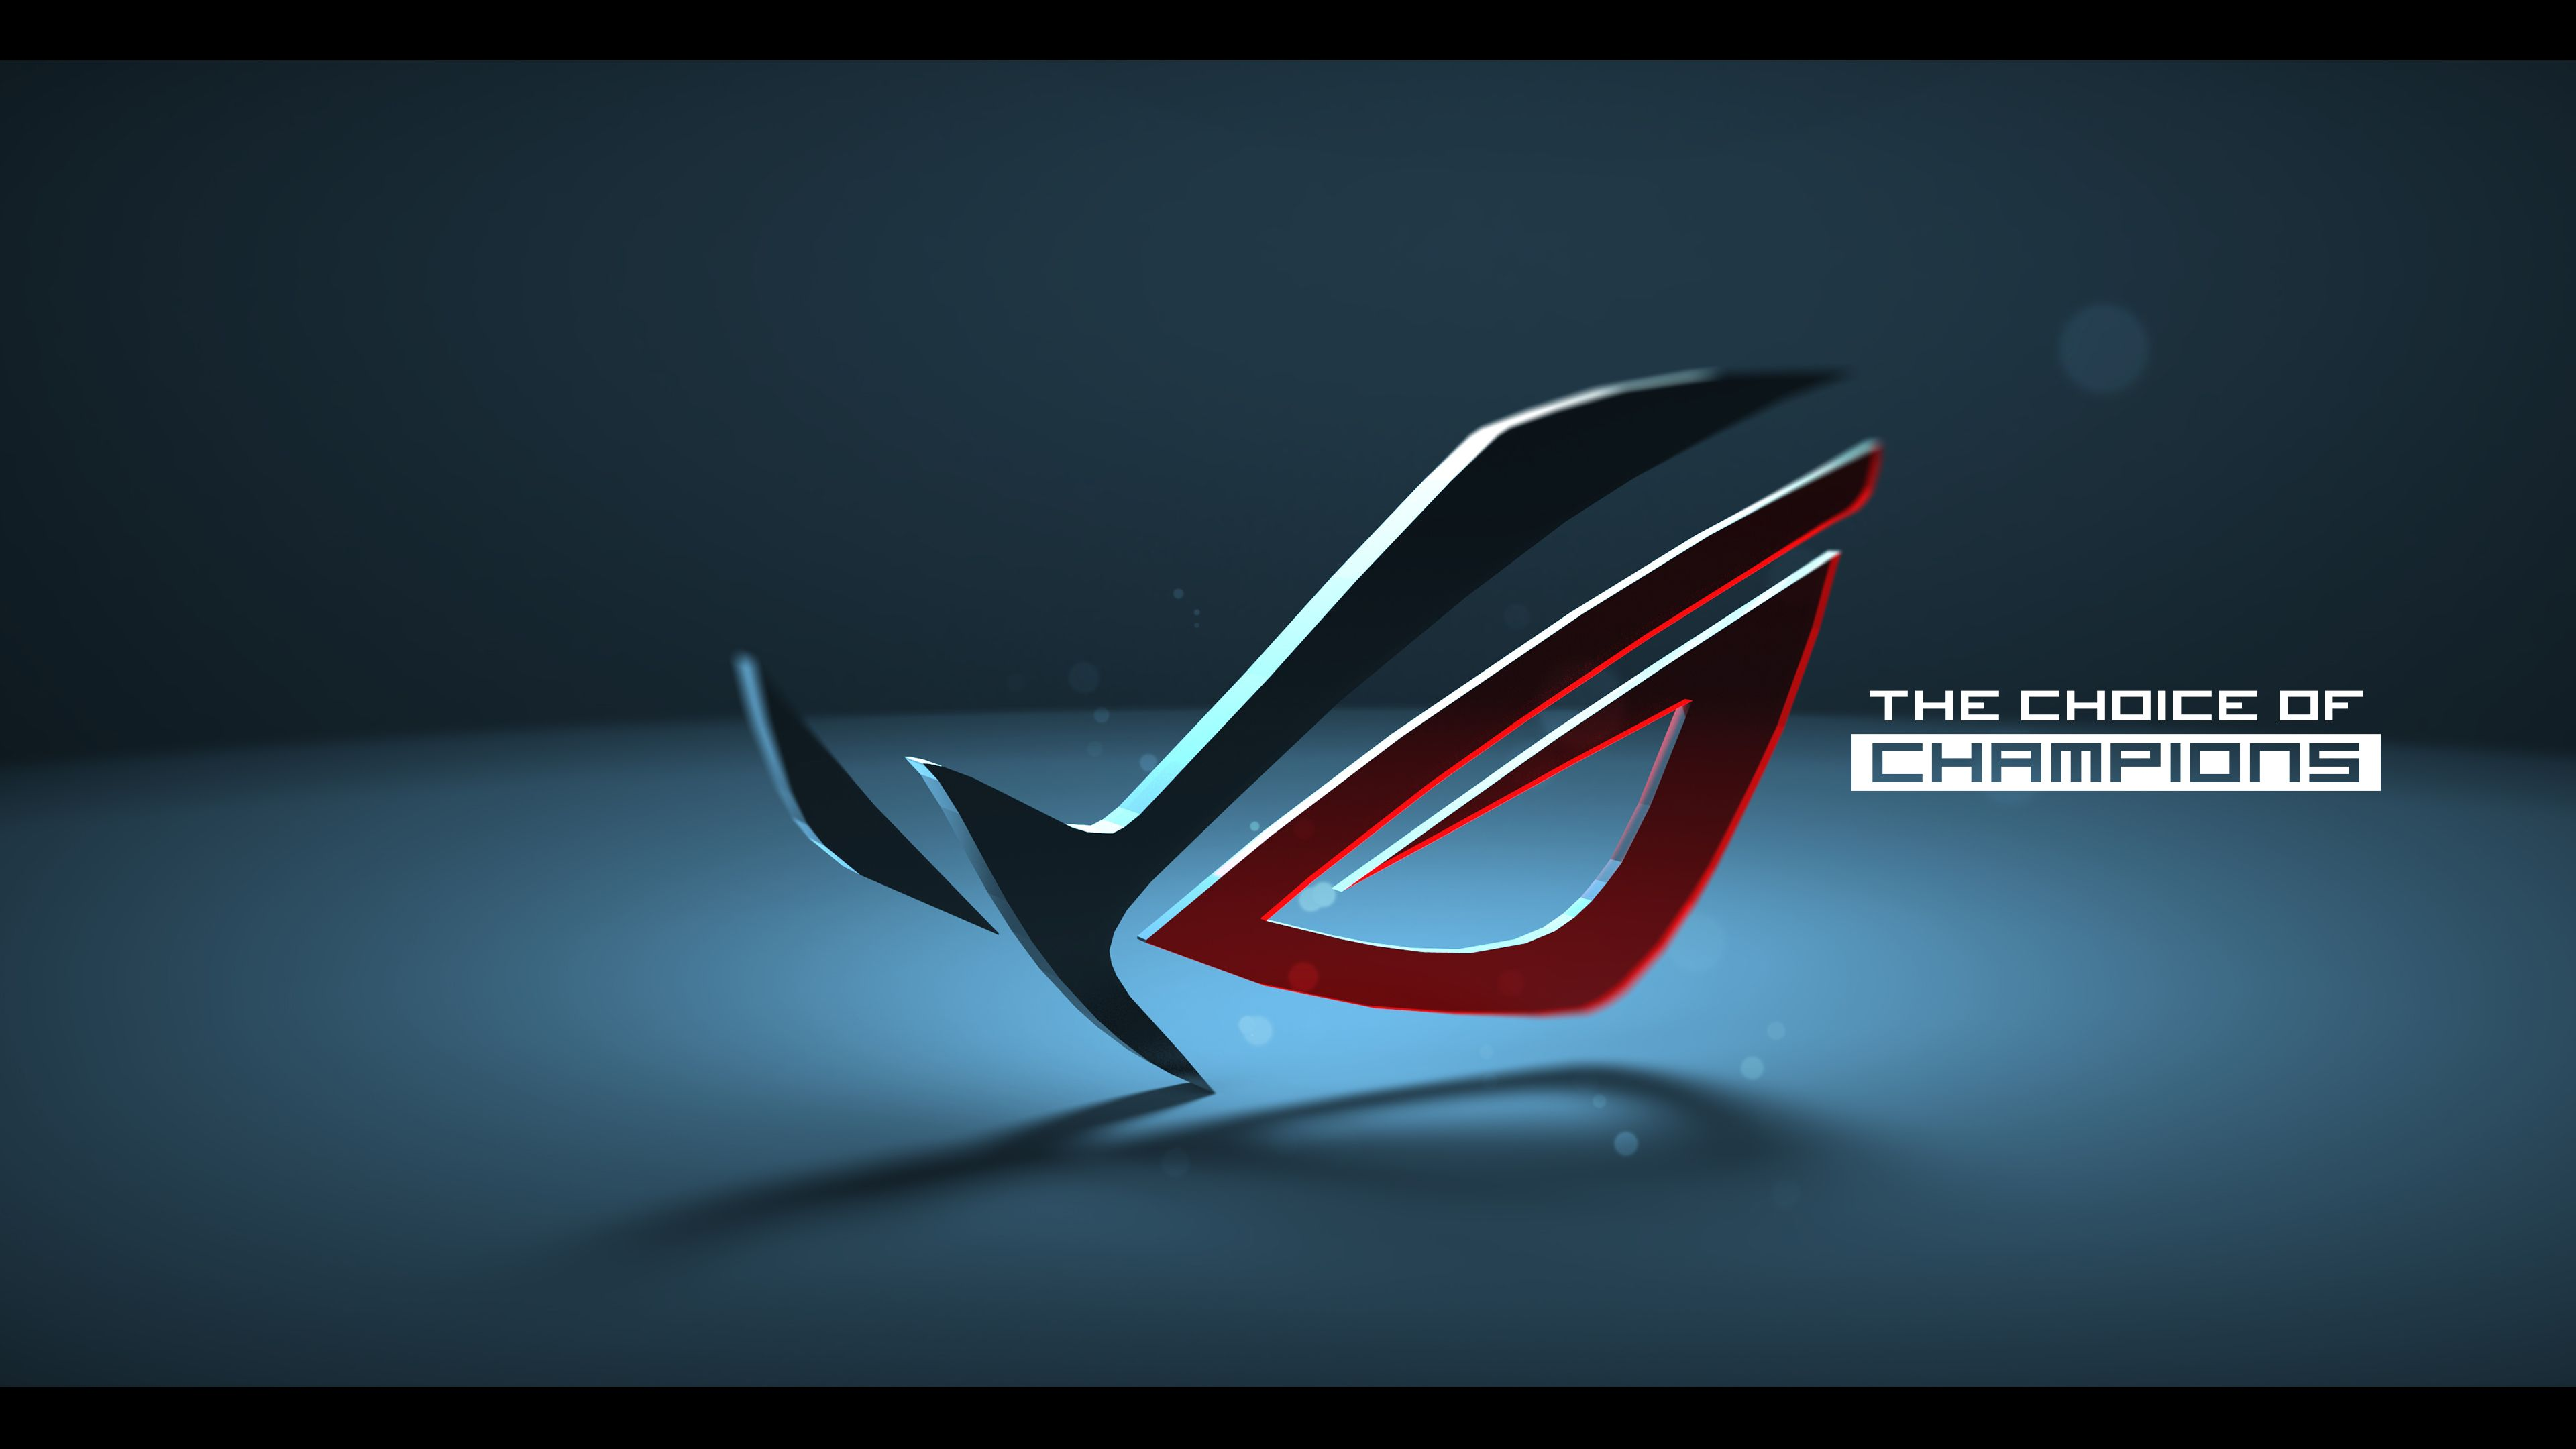 Asus Rog Wallpaper Full Hd For Free Wallpaper